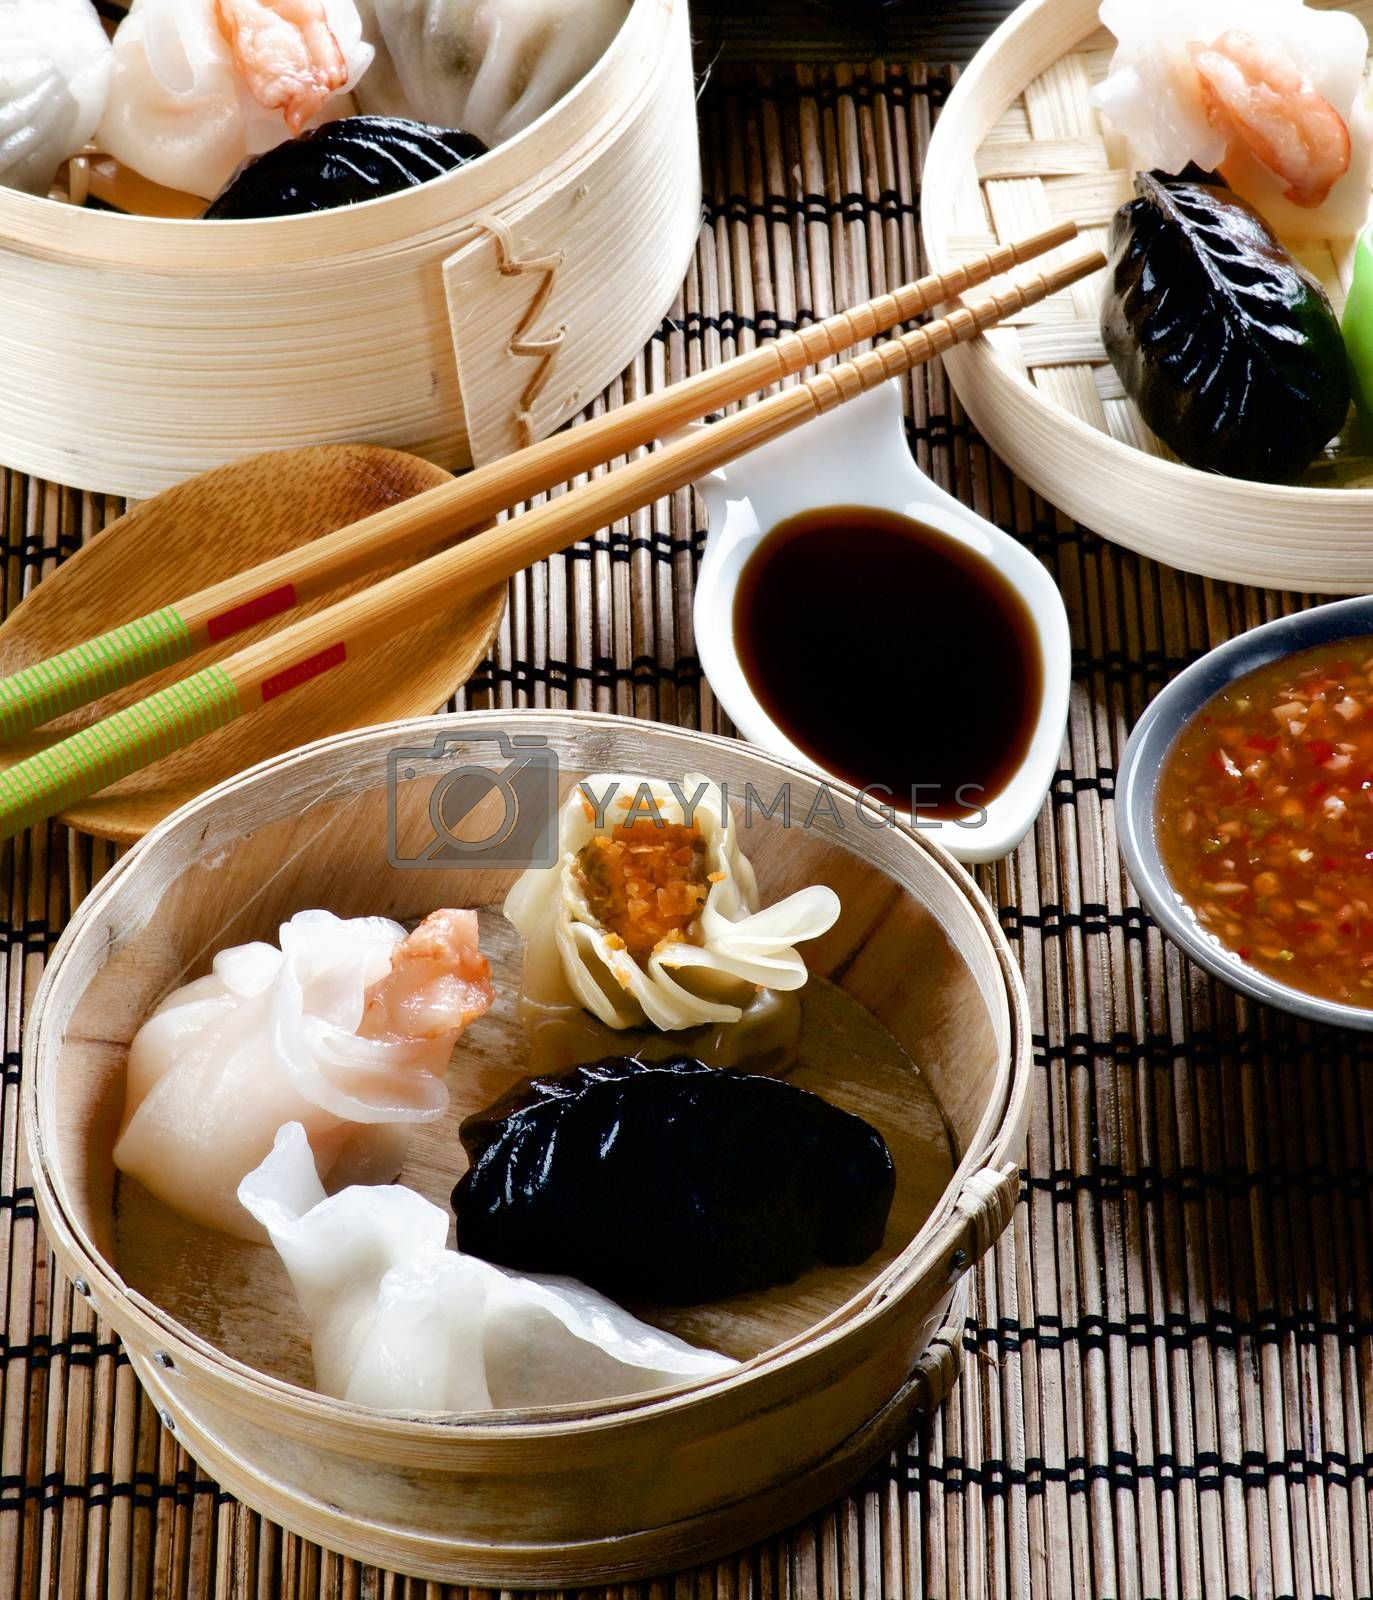 Royalty free image of Dim Sum in Bamboo Bowls by zhekos